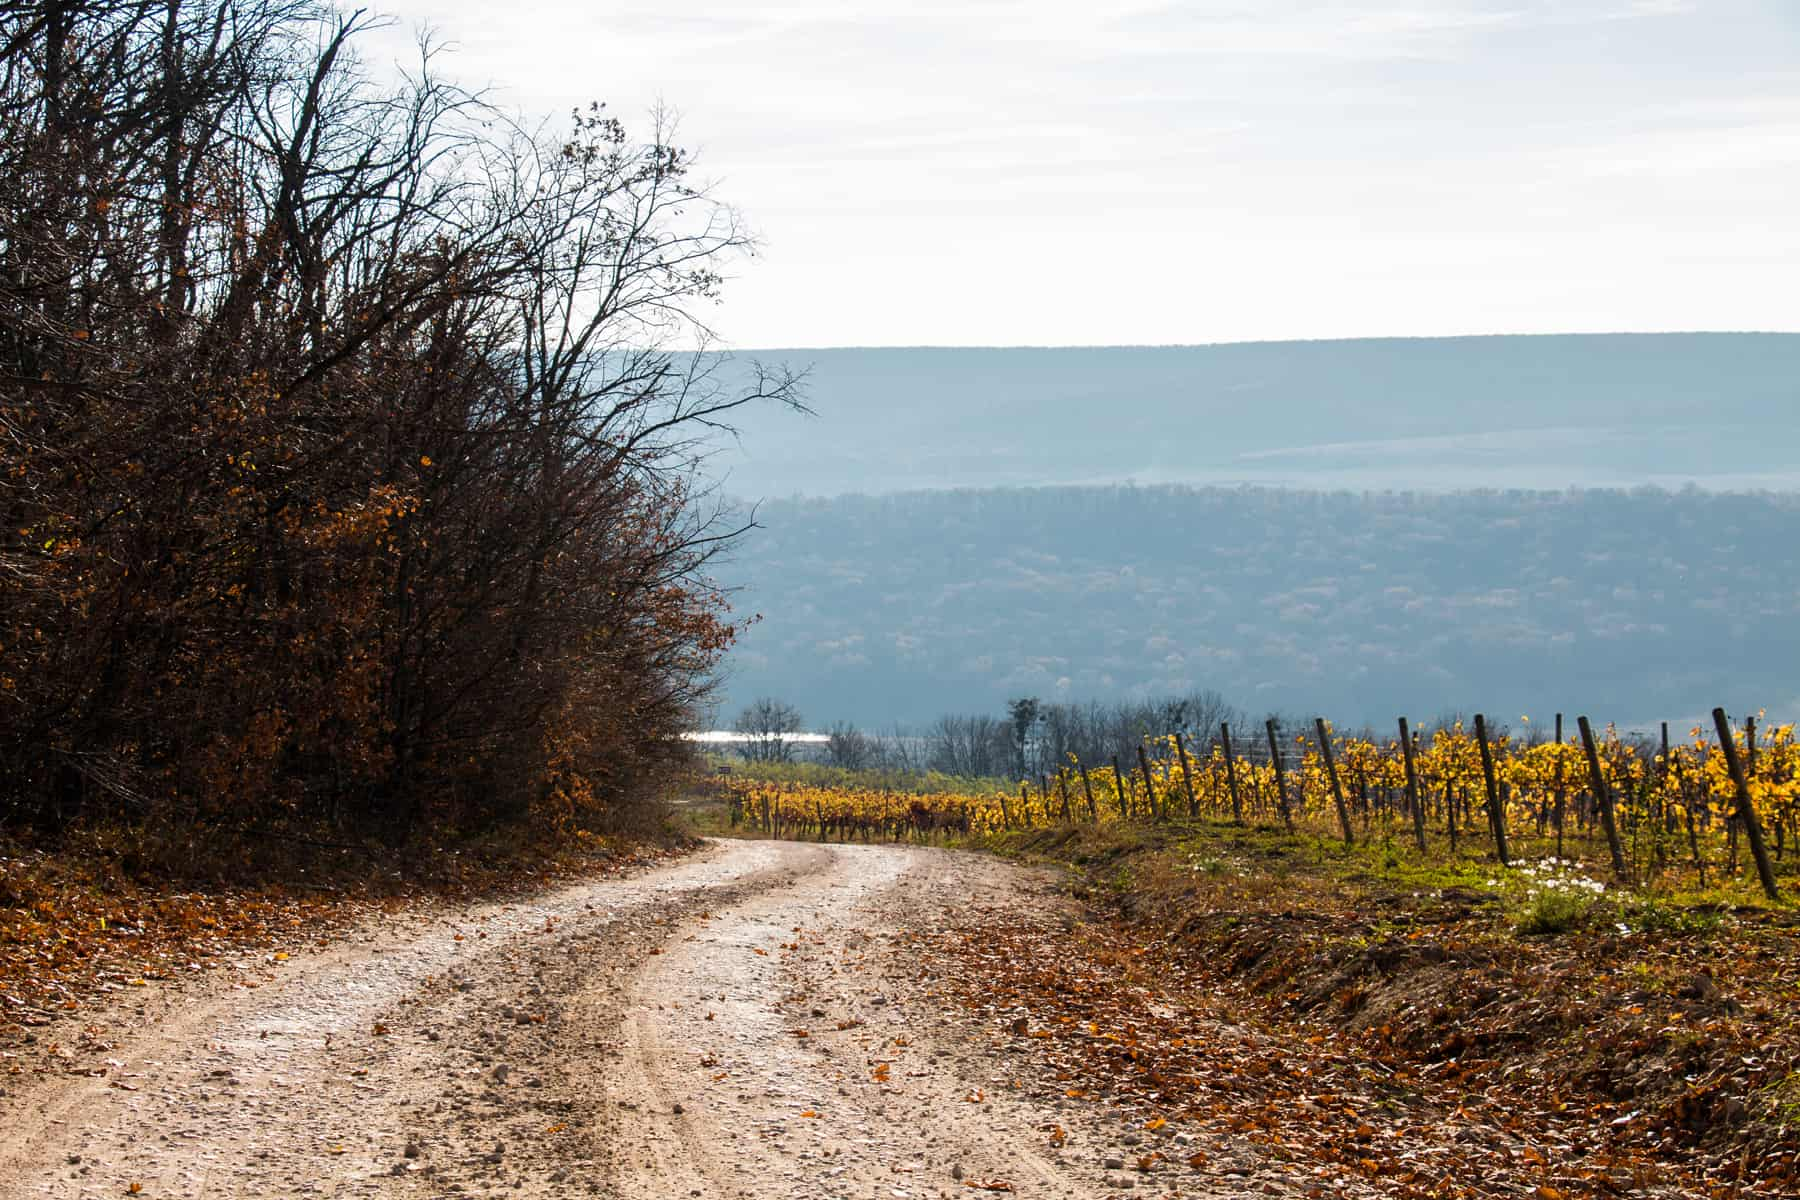 Gravel road passing trees and a vineyard at a winery in Moldova